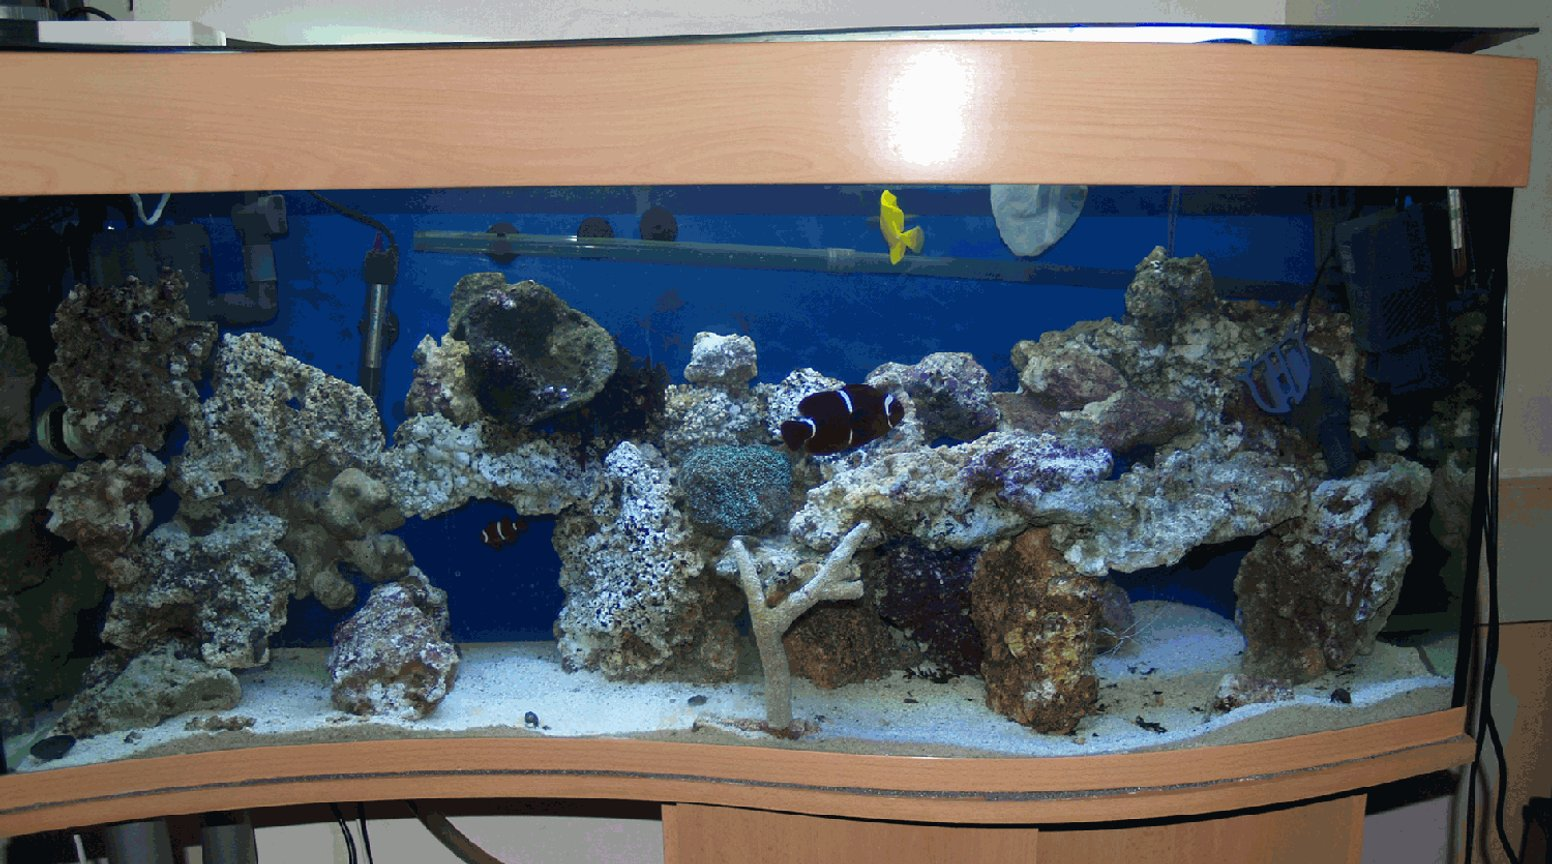 34 gallons saltwater fish tank (mostly fish, little/no live coral) - Full Tank View More to come